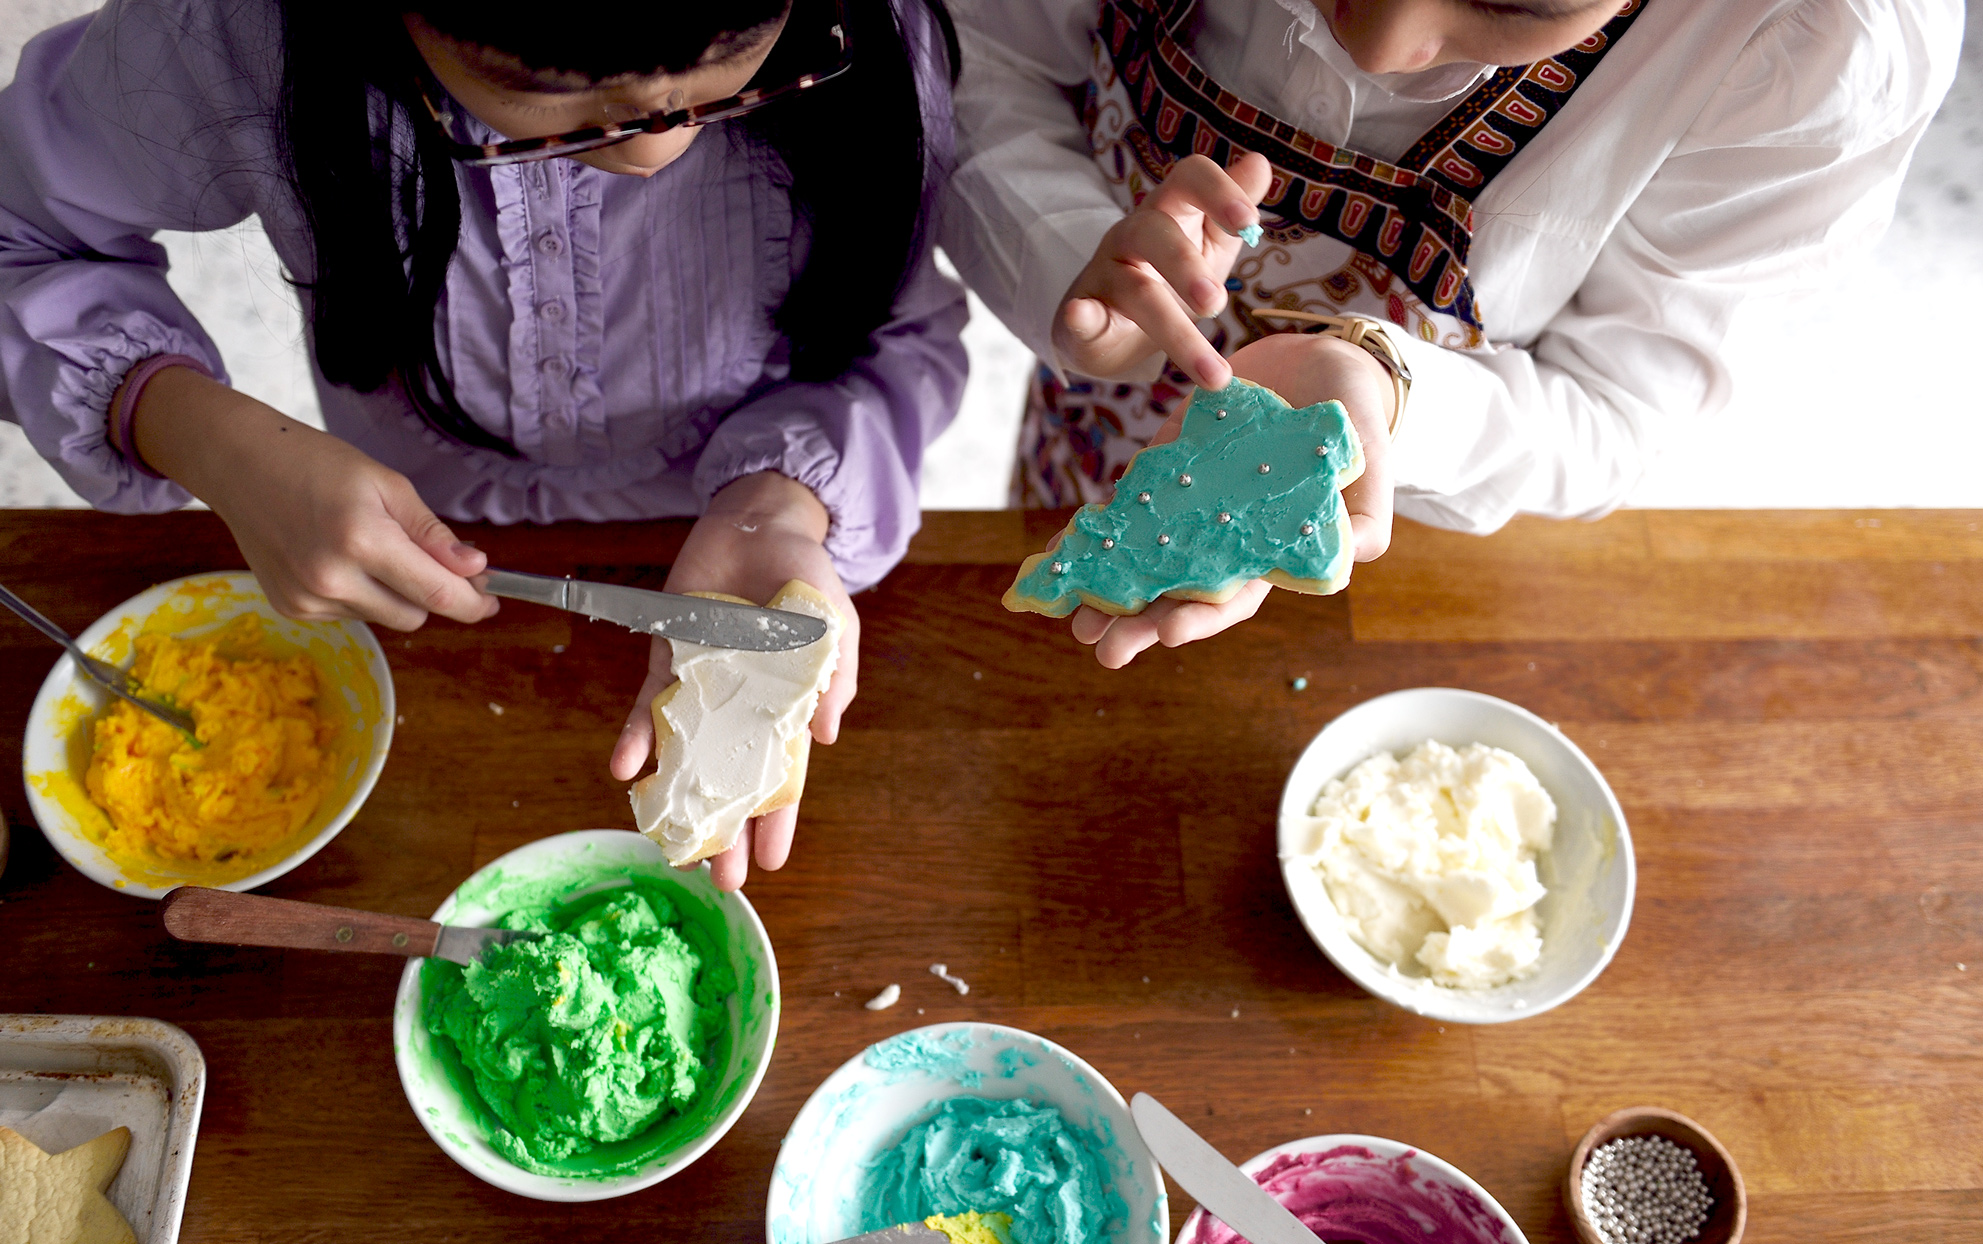 Two girls decorating holiday cookies at a table